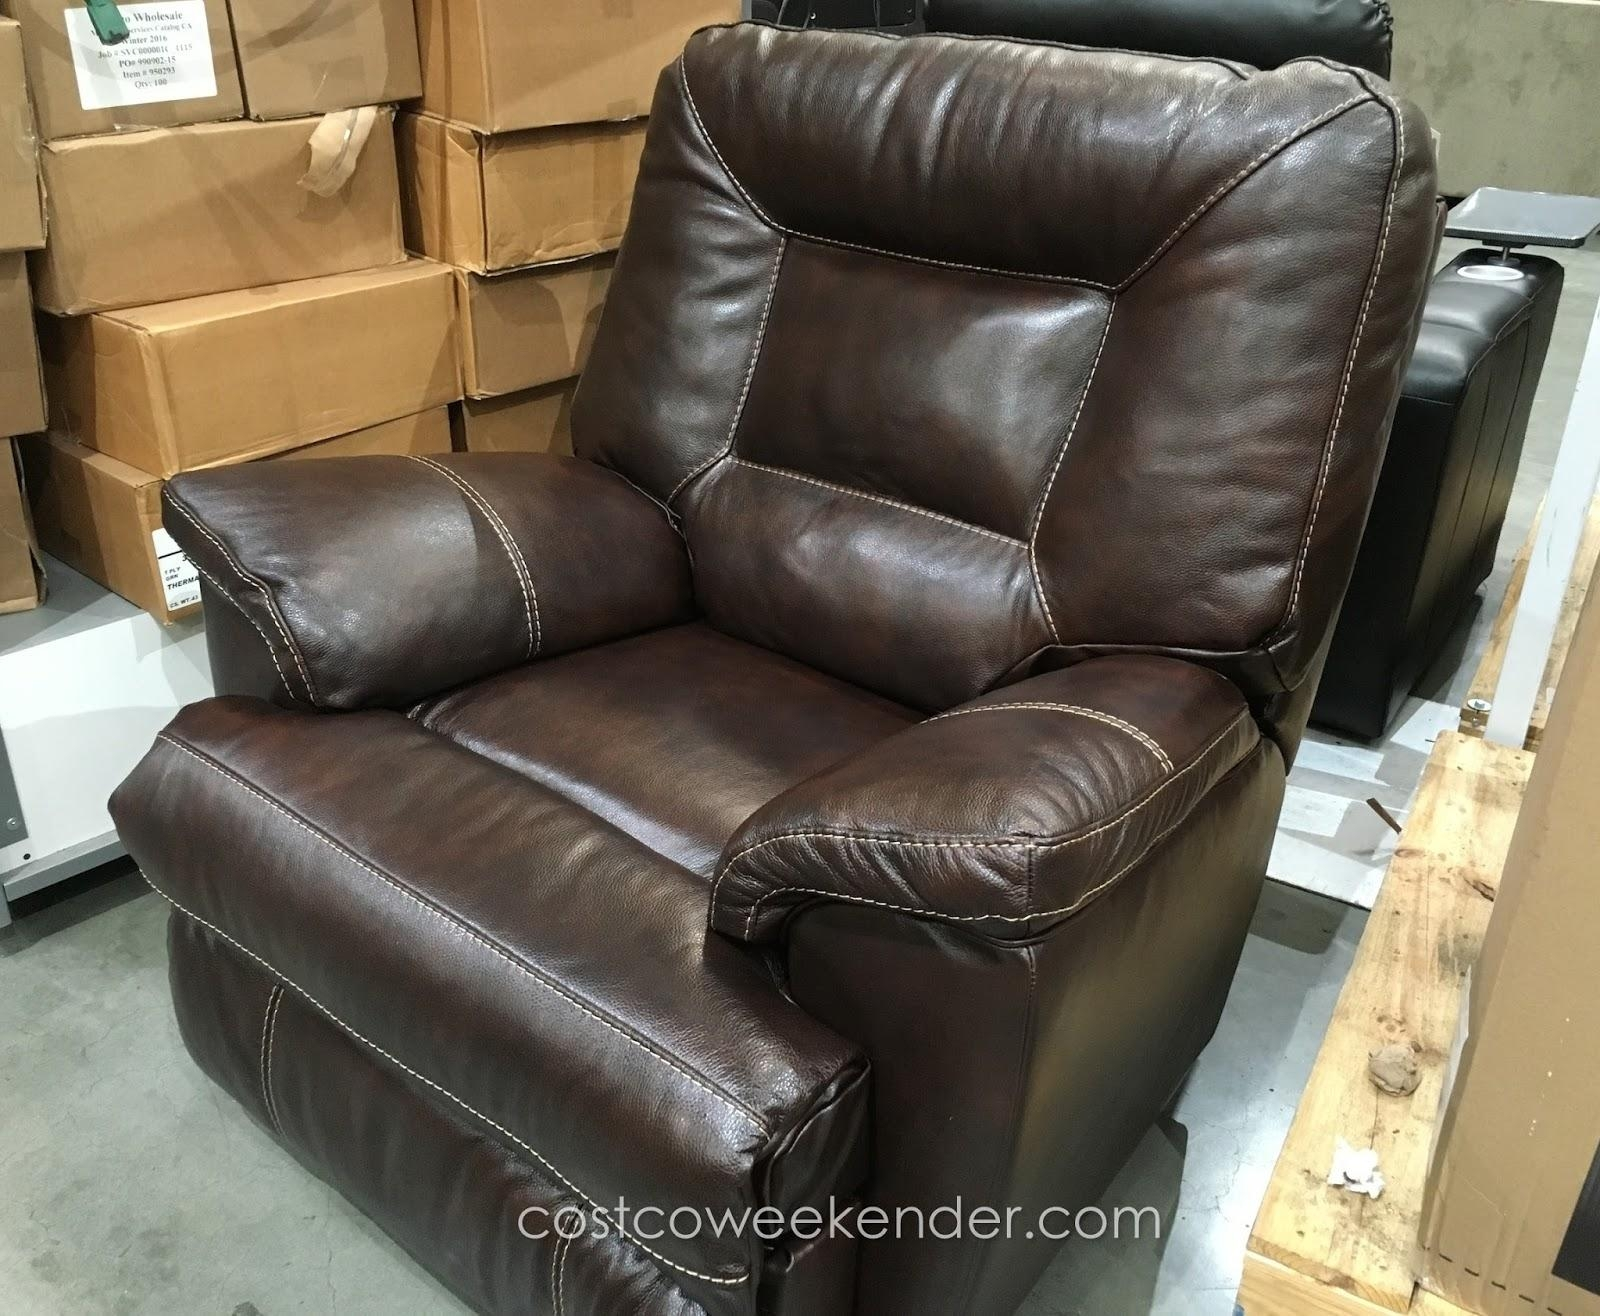 Furniture & Sofa: Enjoy Your Holiday With Costco Home Theater Within Berkline Couches (Image 6 of 20)